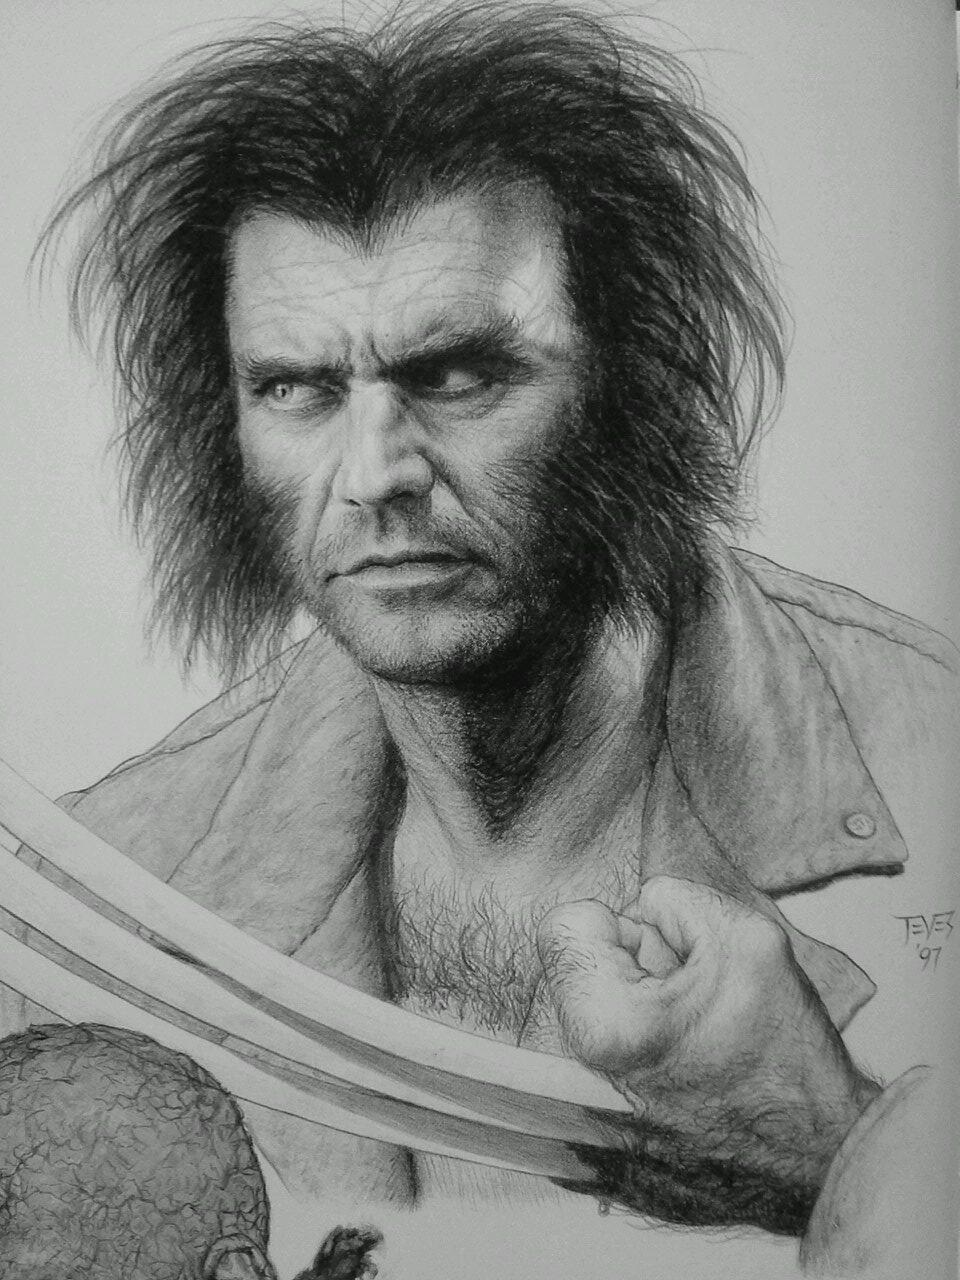 Here's what Mel Gibson would look like as X-Men's Wolverine